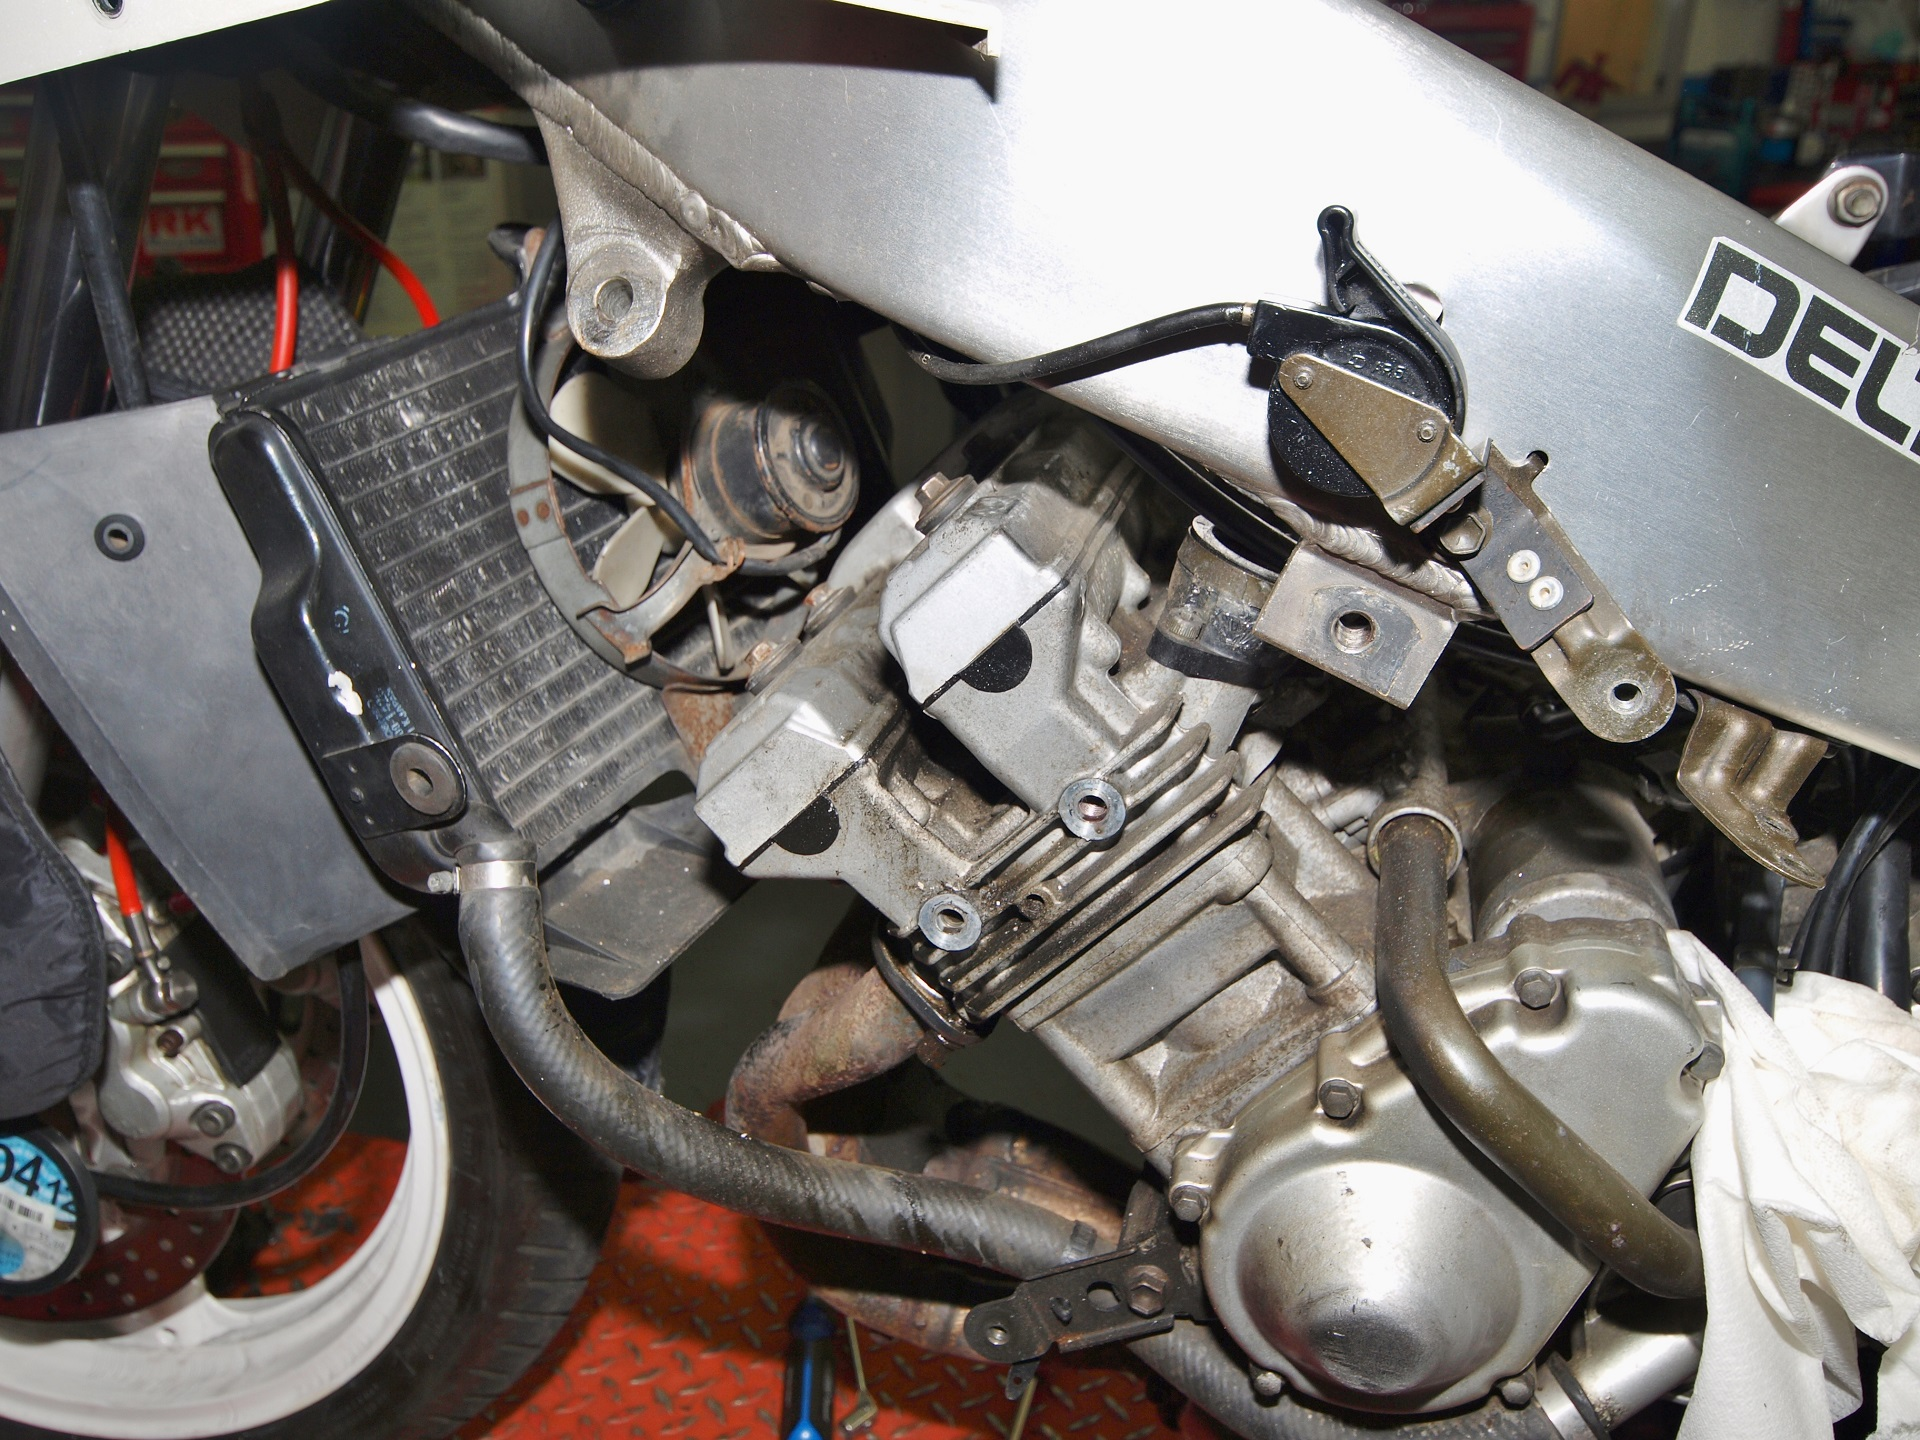 Side profile of Yamaha engine